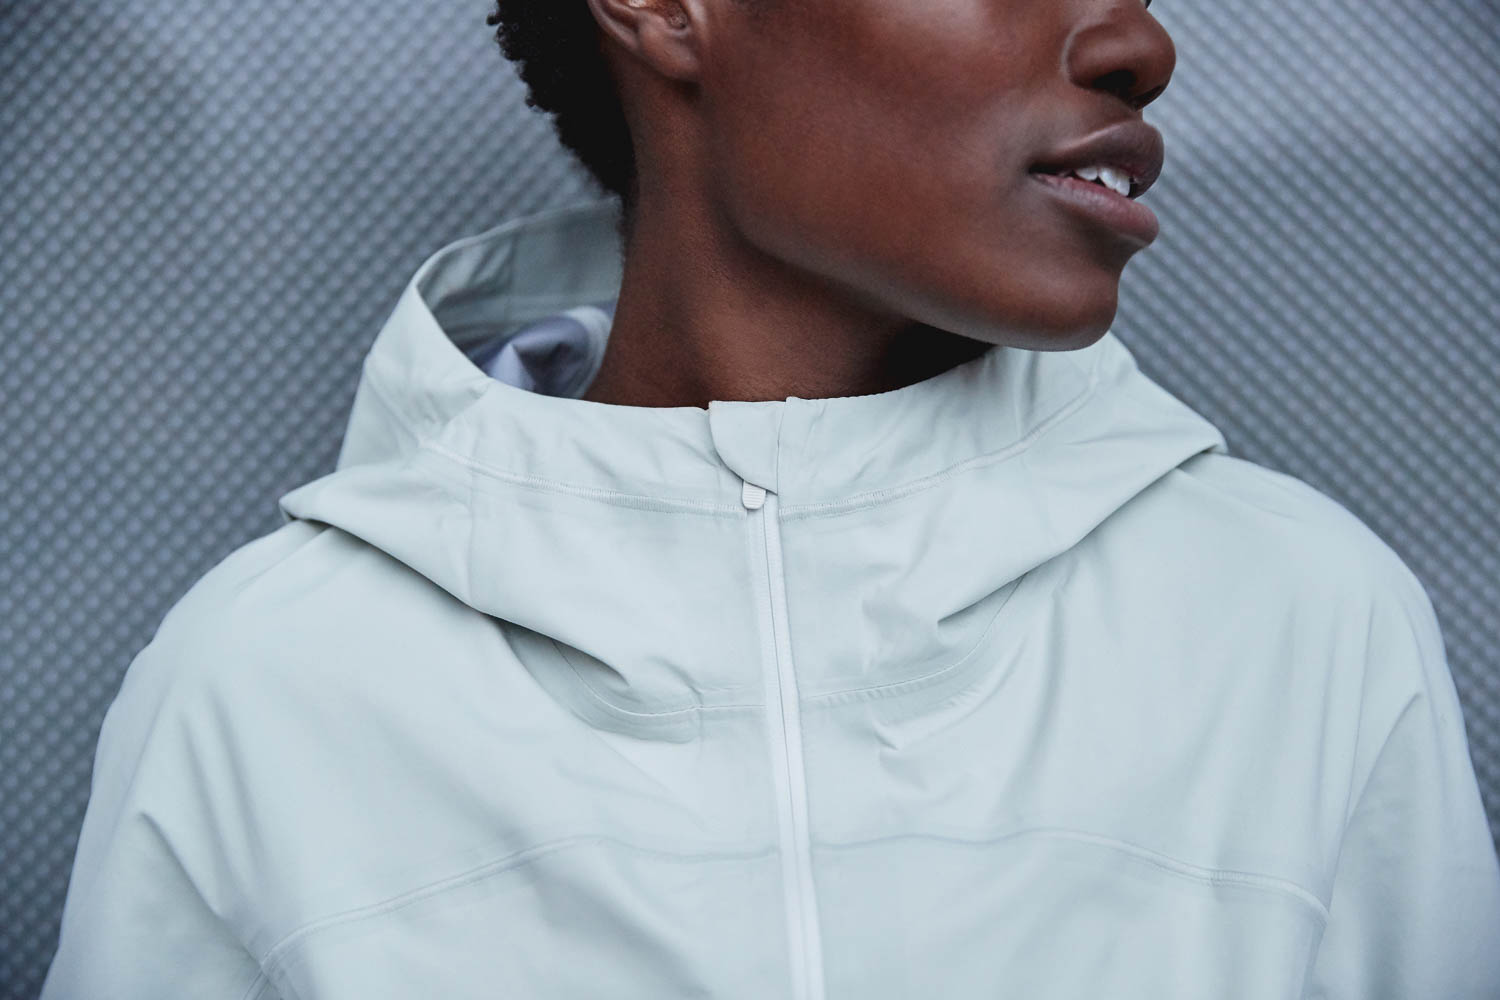 lululemon-rain-jacket-Abigail-Whitney-6100-MK-Matt-Korinek-Photography-Copyright-2018-SQSP-1500px.jpg